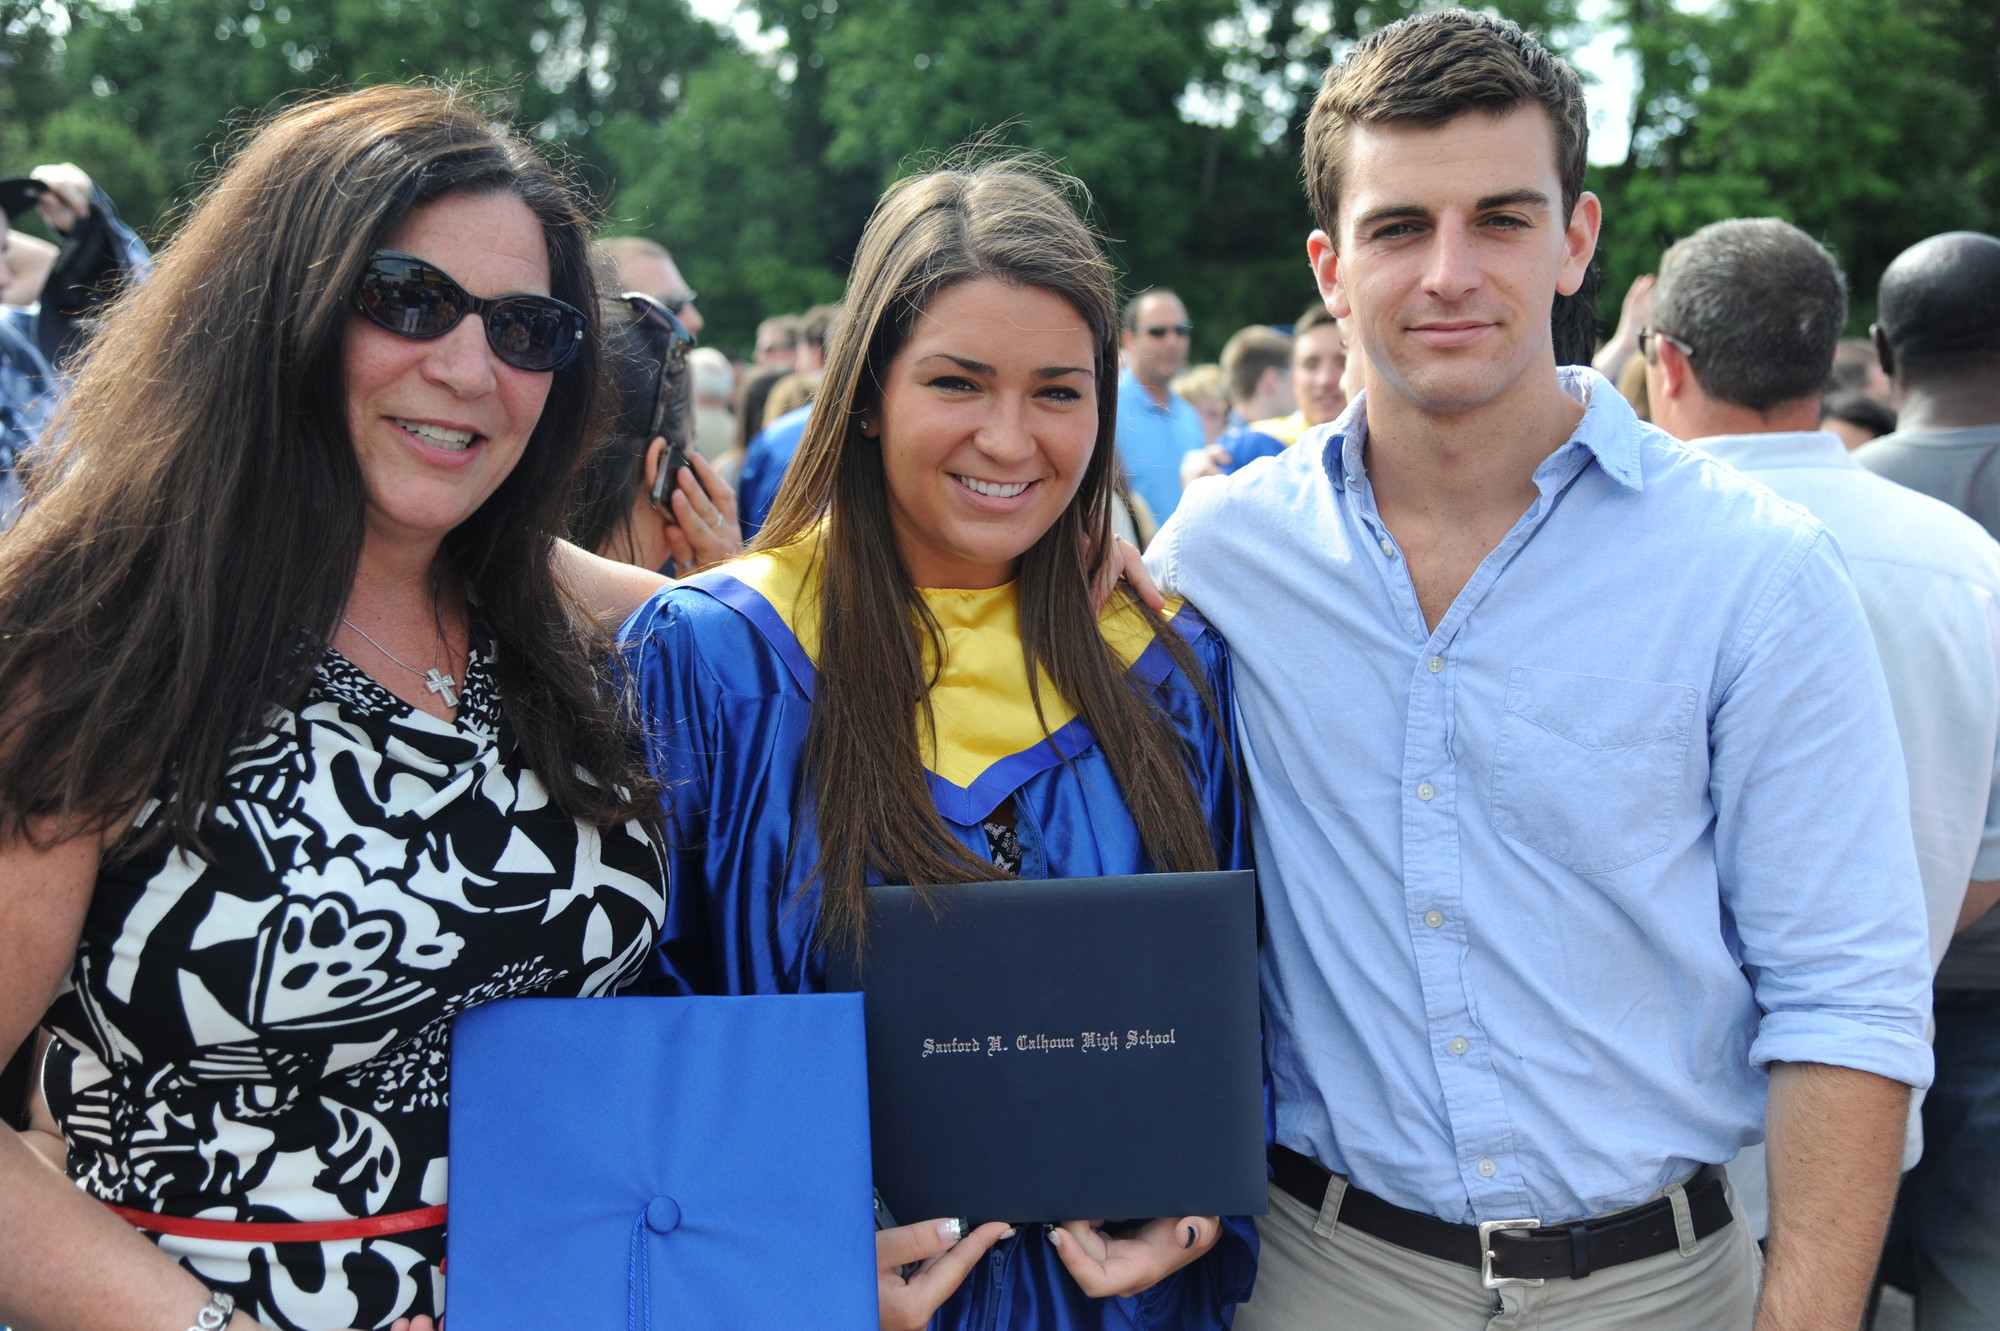 Melanie Krug (center) celebrated graduation with her mom, Pat, and her brother, Joe.